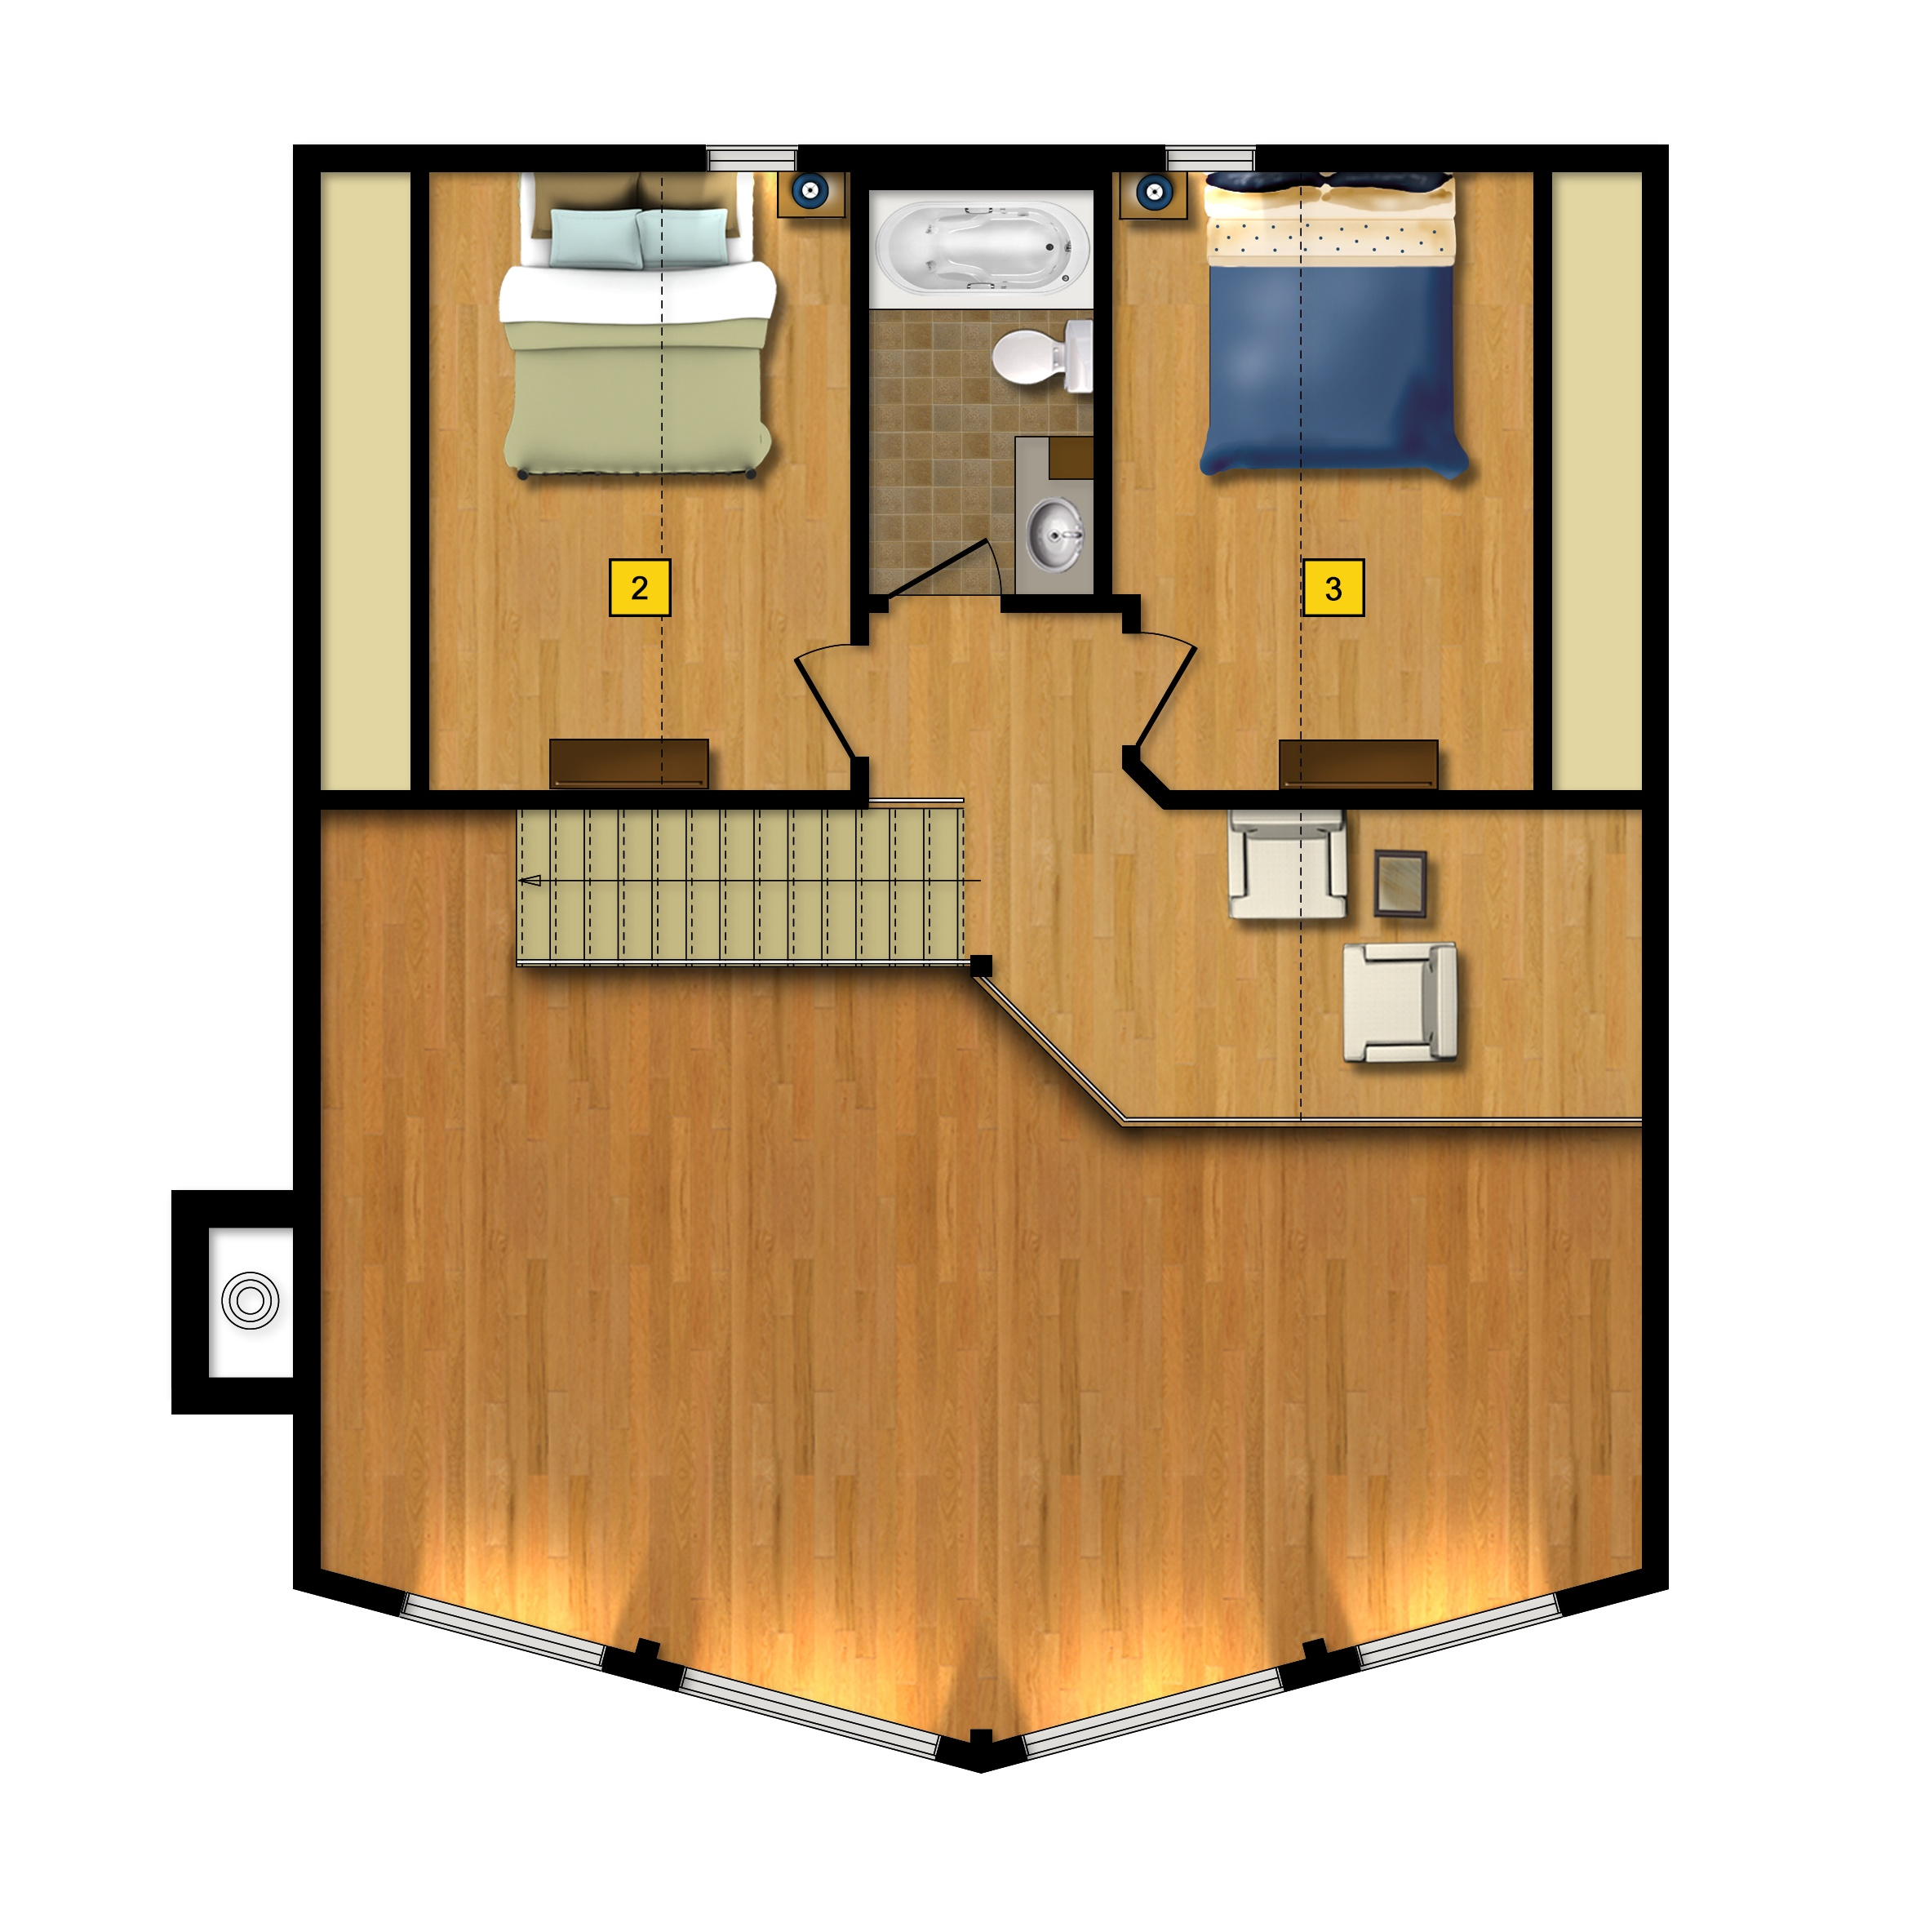 St Bernard floor plan 2